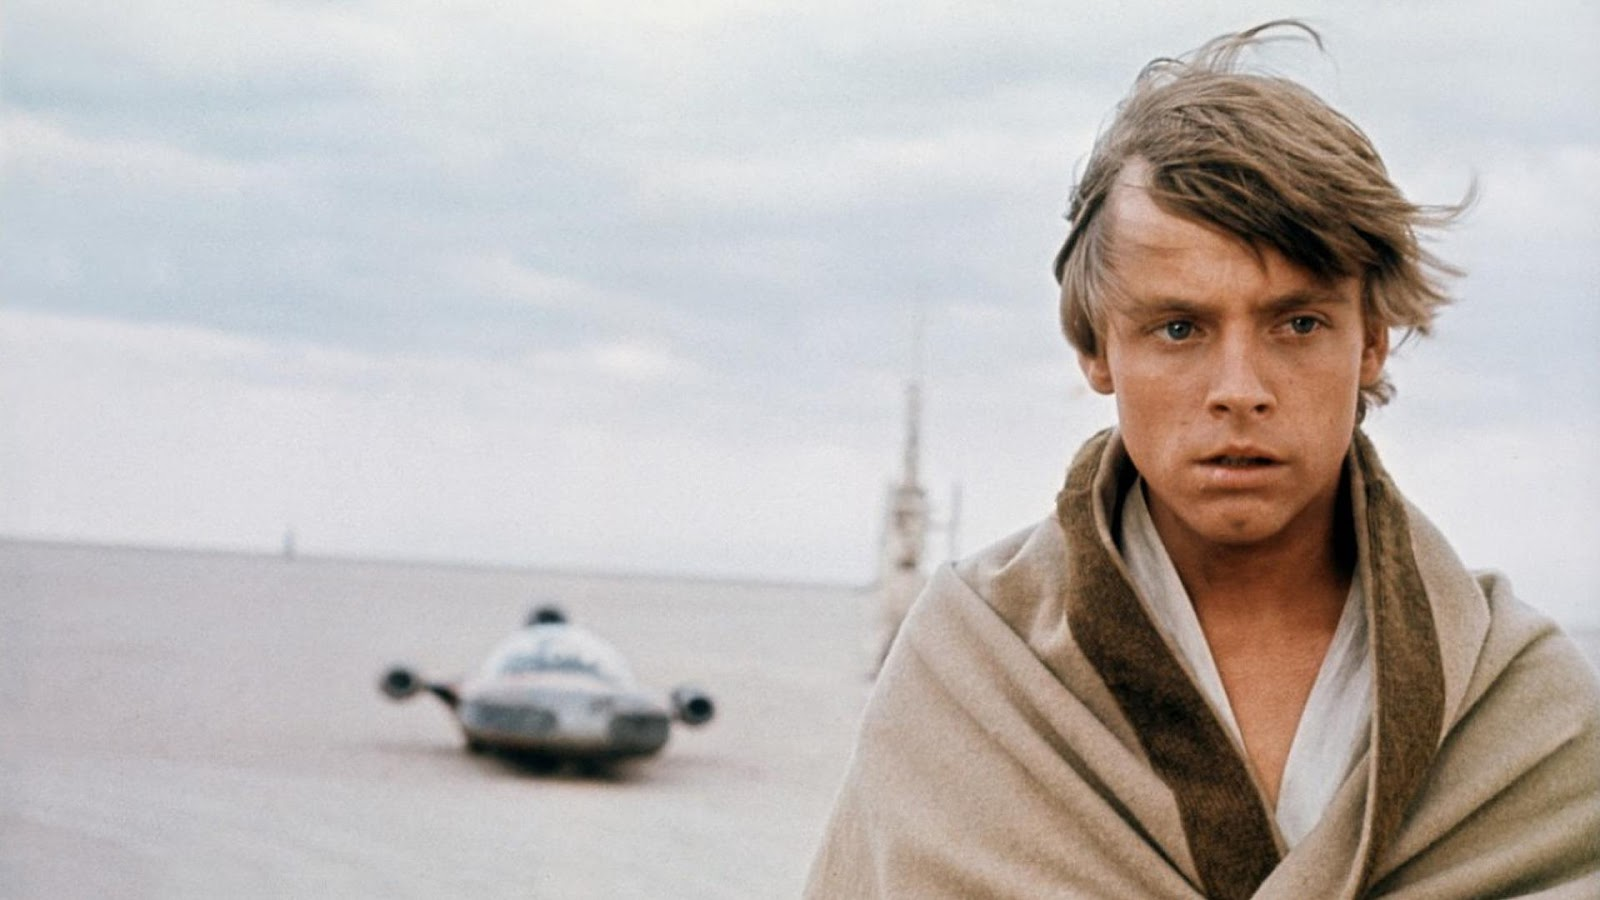 Mark Hamill has advice for Star Wars fans but will they listen?